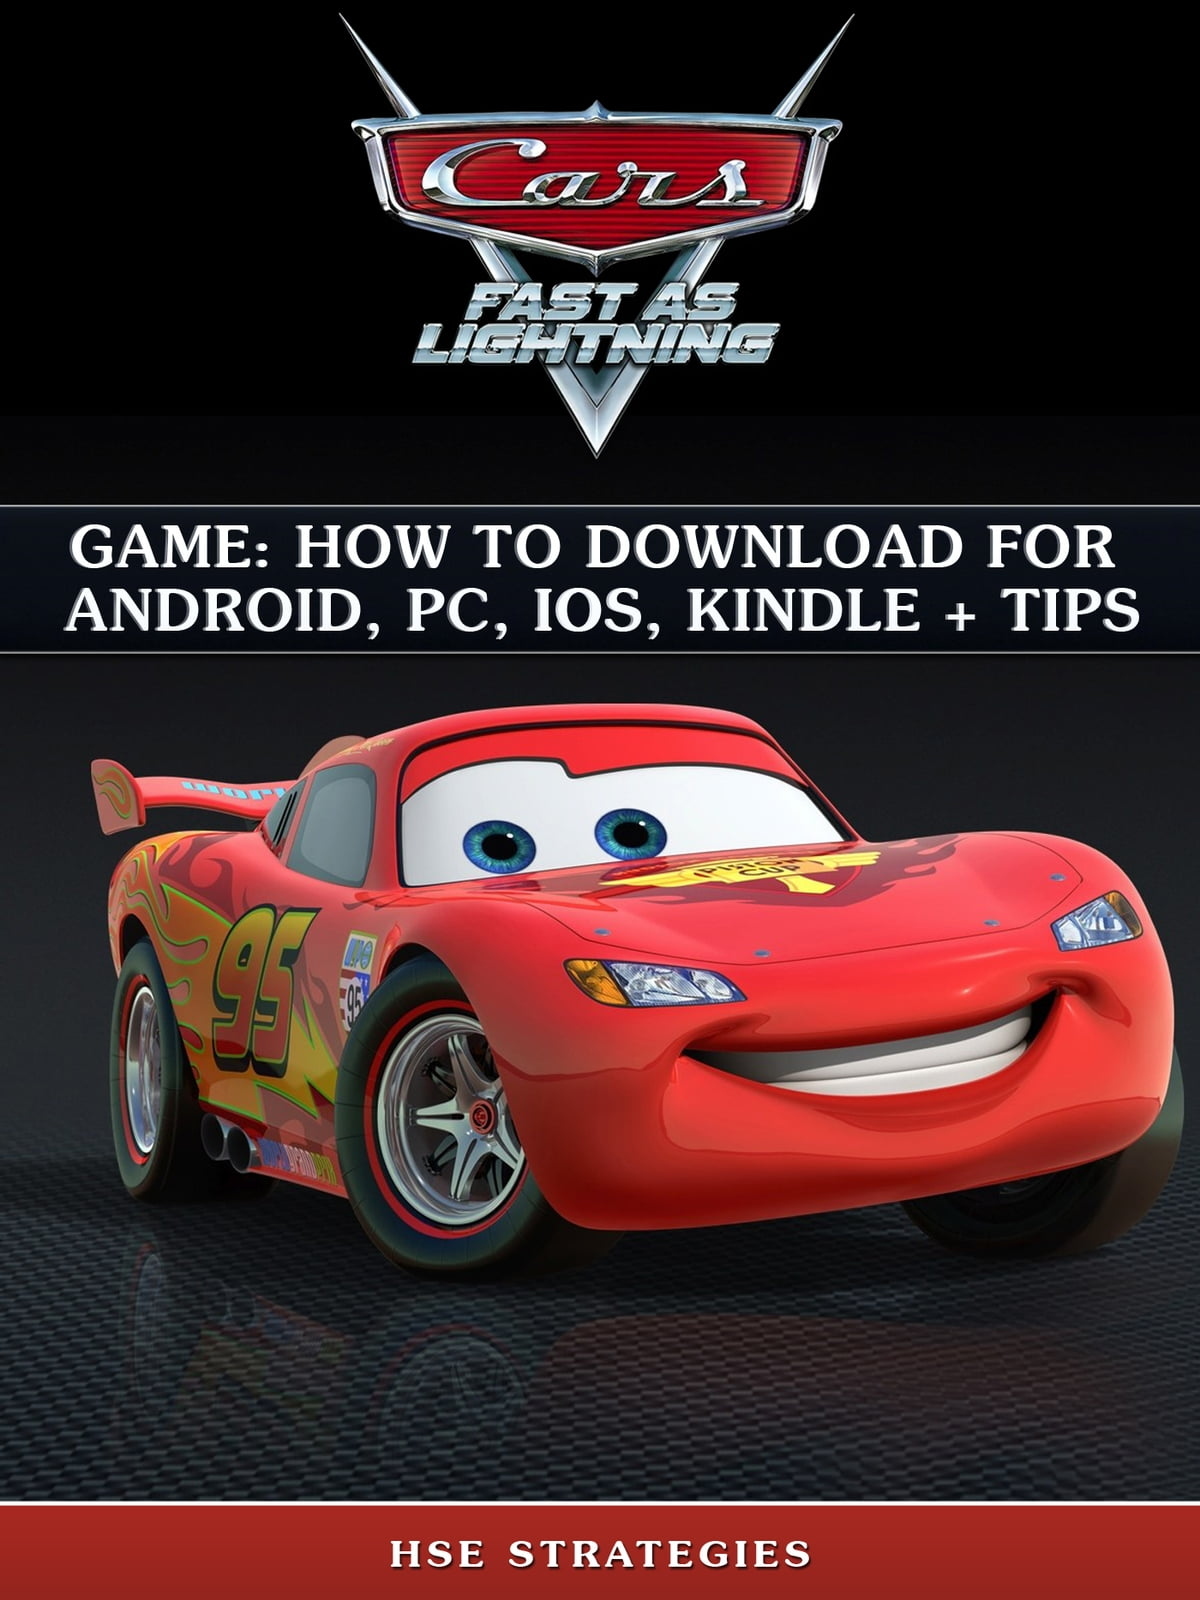 Cars Fast as Lightning Game: How to Download for Android, PC, iOS, Kindle +  Tips ebook by Hse Strategies - Rakuten Kobo